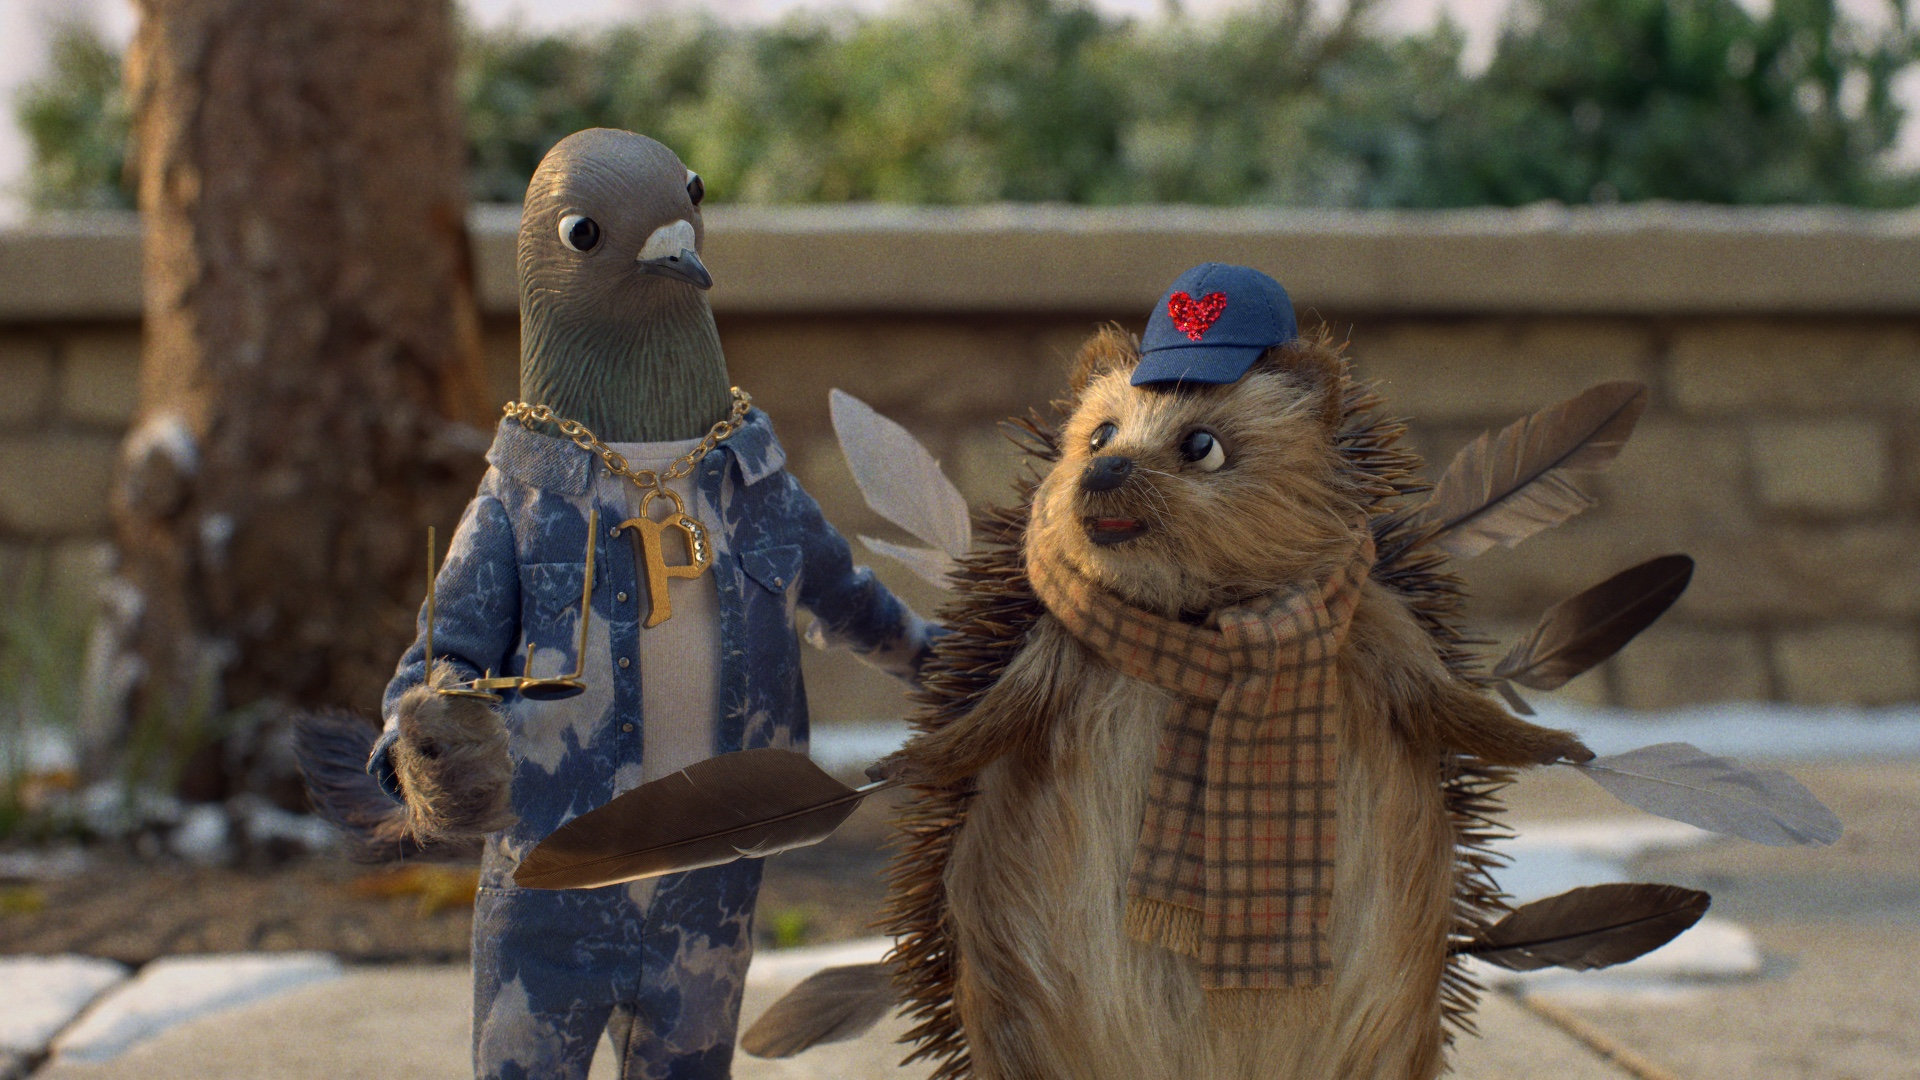 A 3D animated pigeon on the left, wearing a blue suit and golden chain with the letter P on it, smiles at a hedgehog who has a blue cap with a red heart on it. He's holding two brown feathers, and has several more attached to his spiked back.